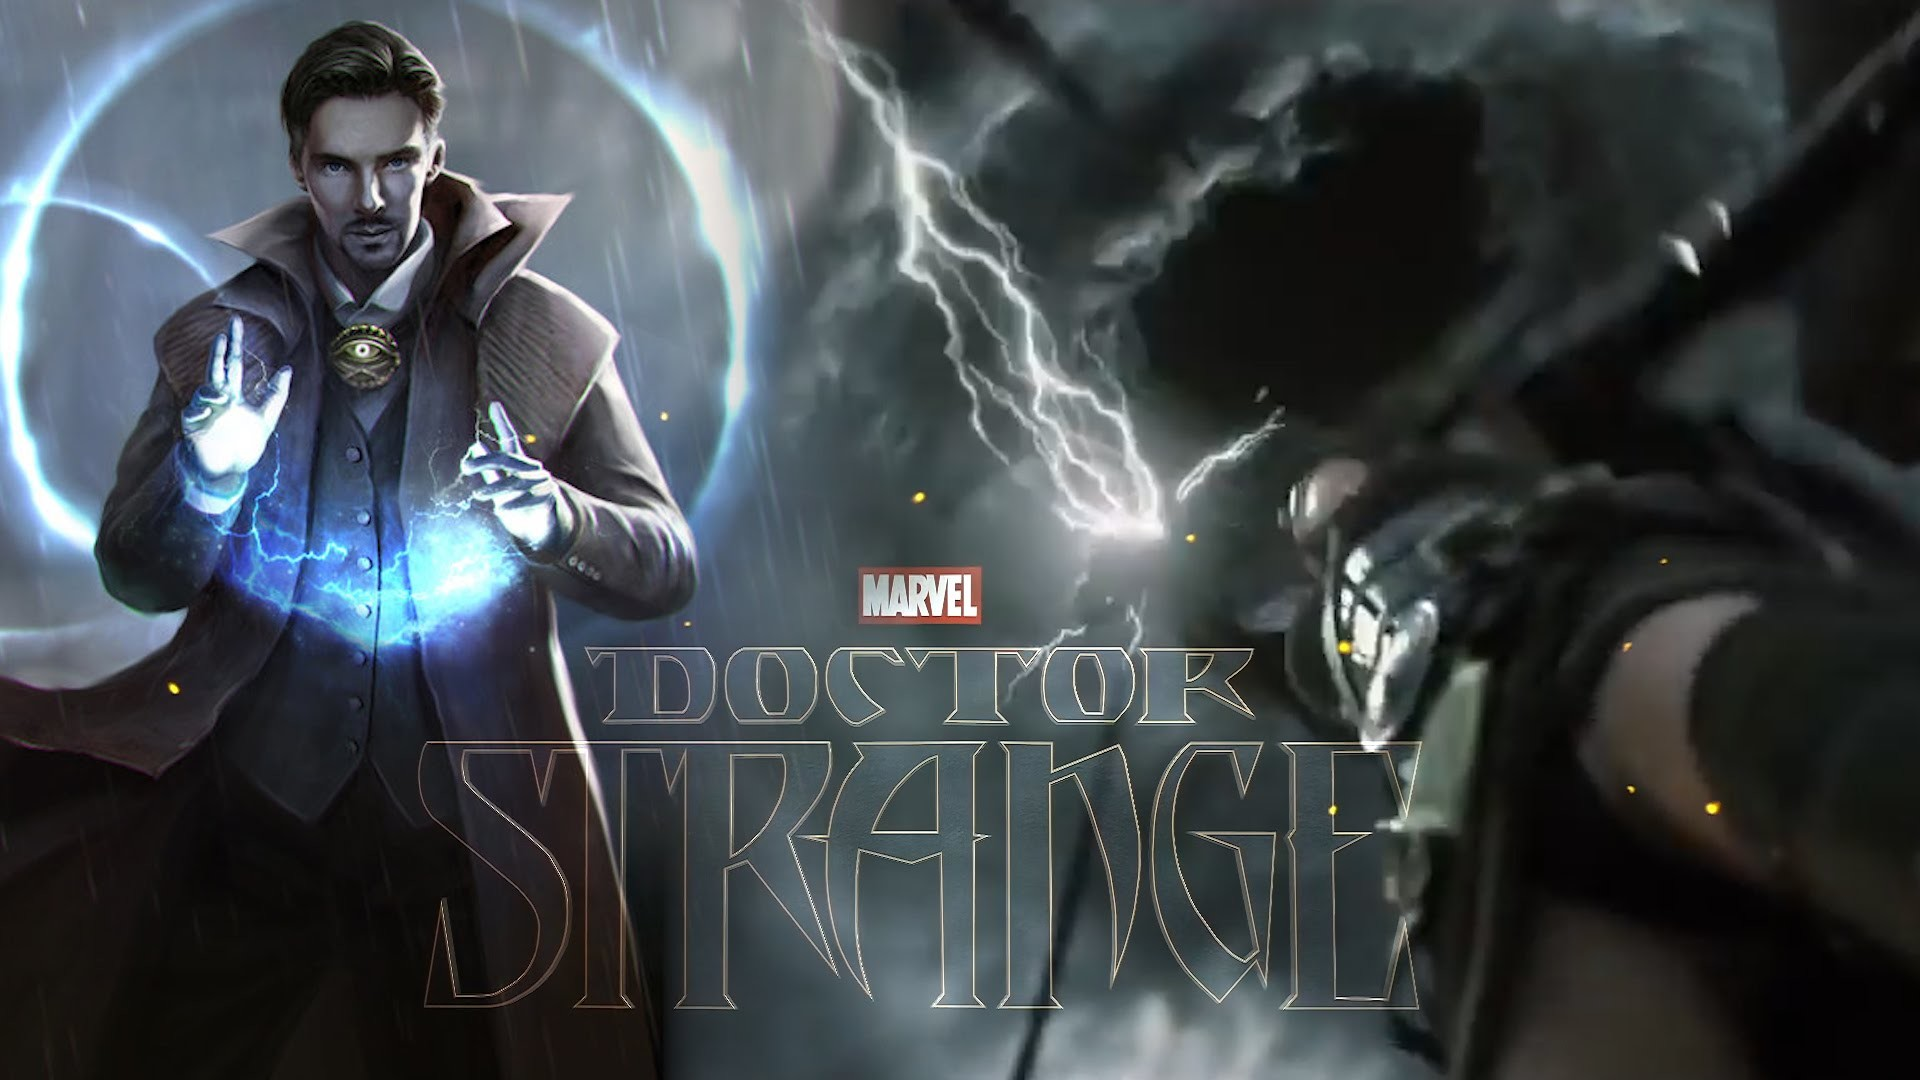 1920x1080 HD Doctor Strange Wallpapers, High Quality, Desktop-Screens.com